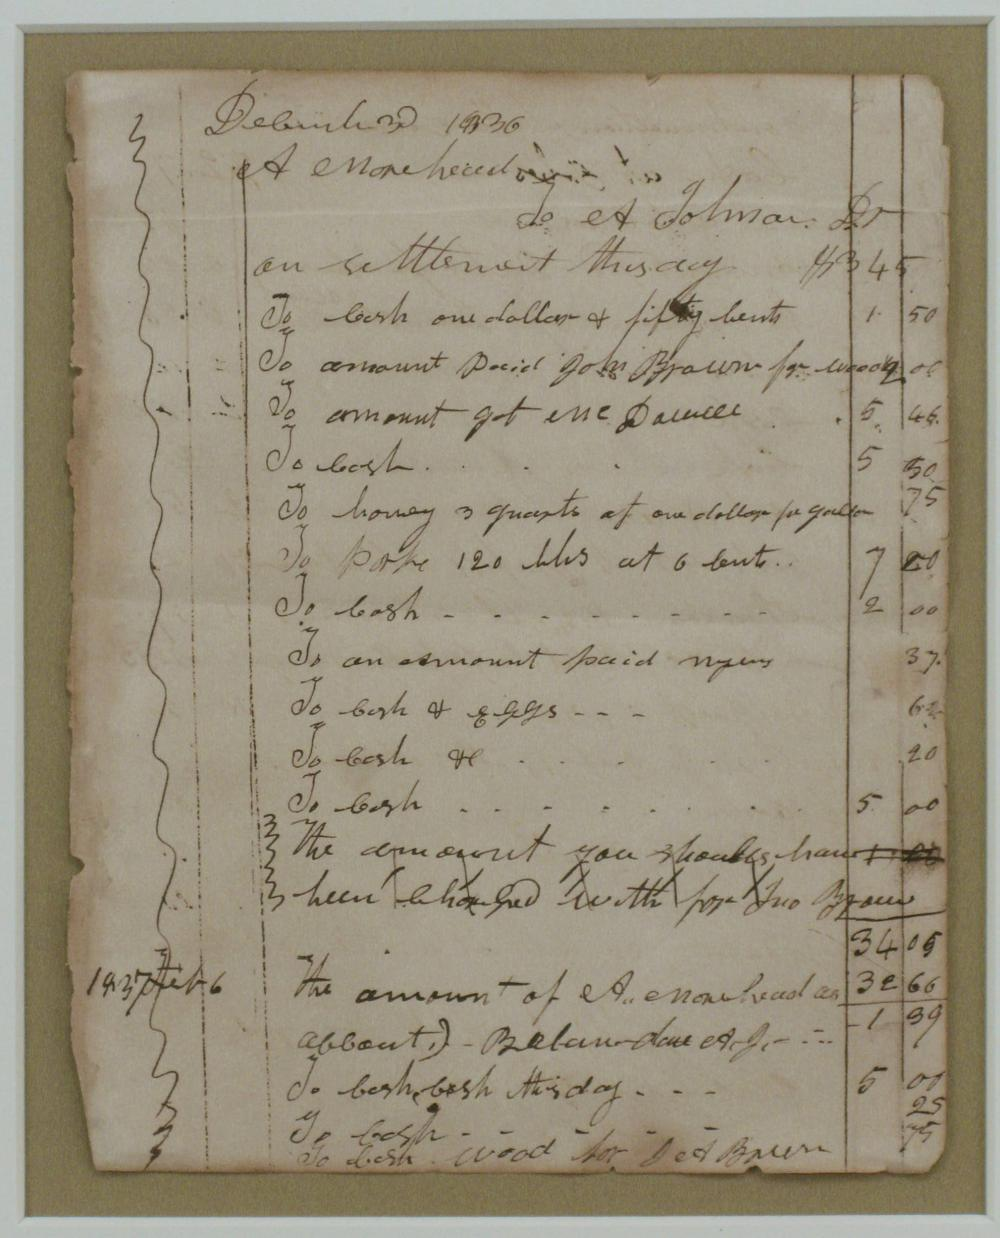 A Sheet from the Ledger of 28-year-old Andrew Johnson's Tailor Shop, Signed Twice by the Future President! Among the Earliest Examples Extant!